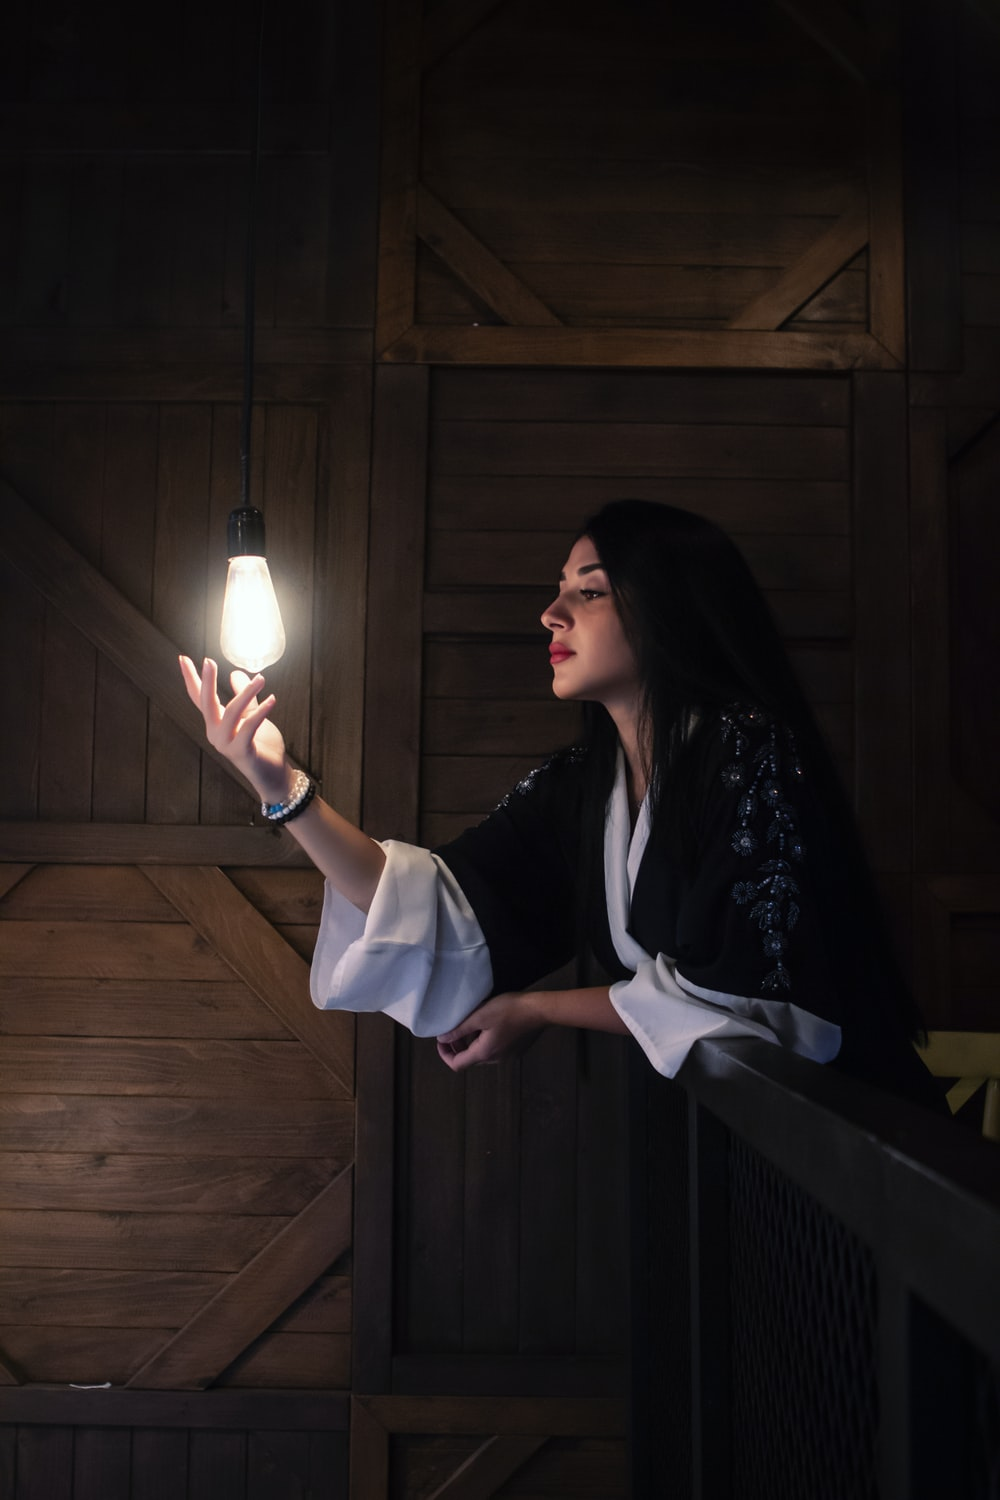 woman in black and white dress holding white light bulb